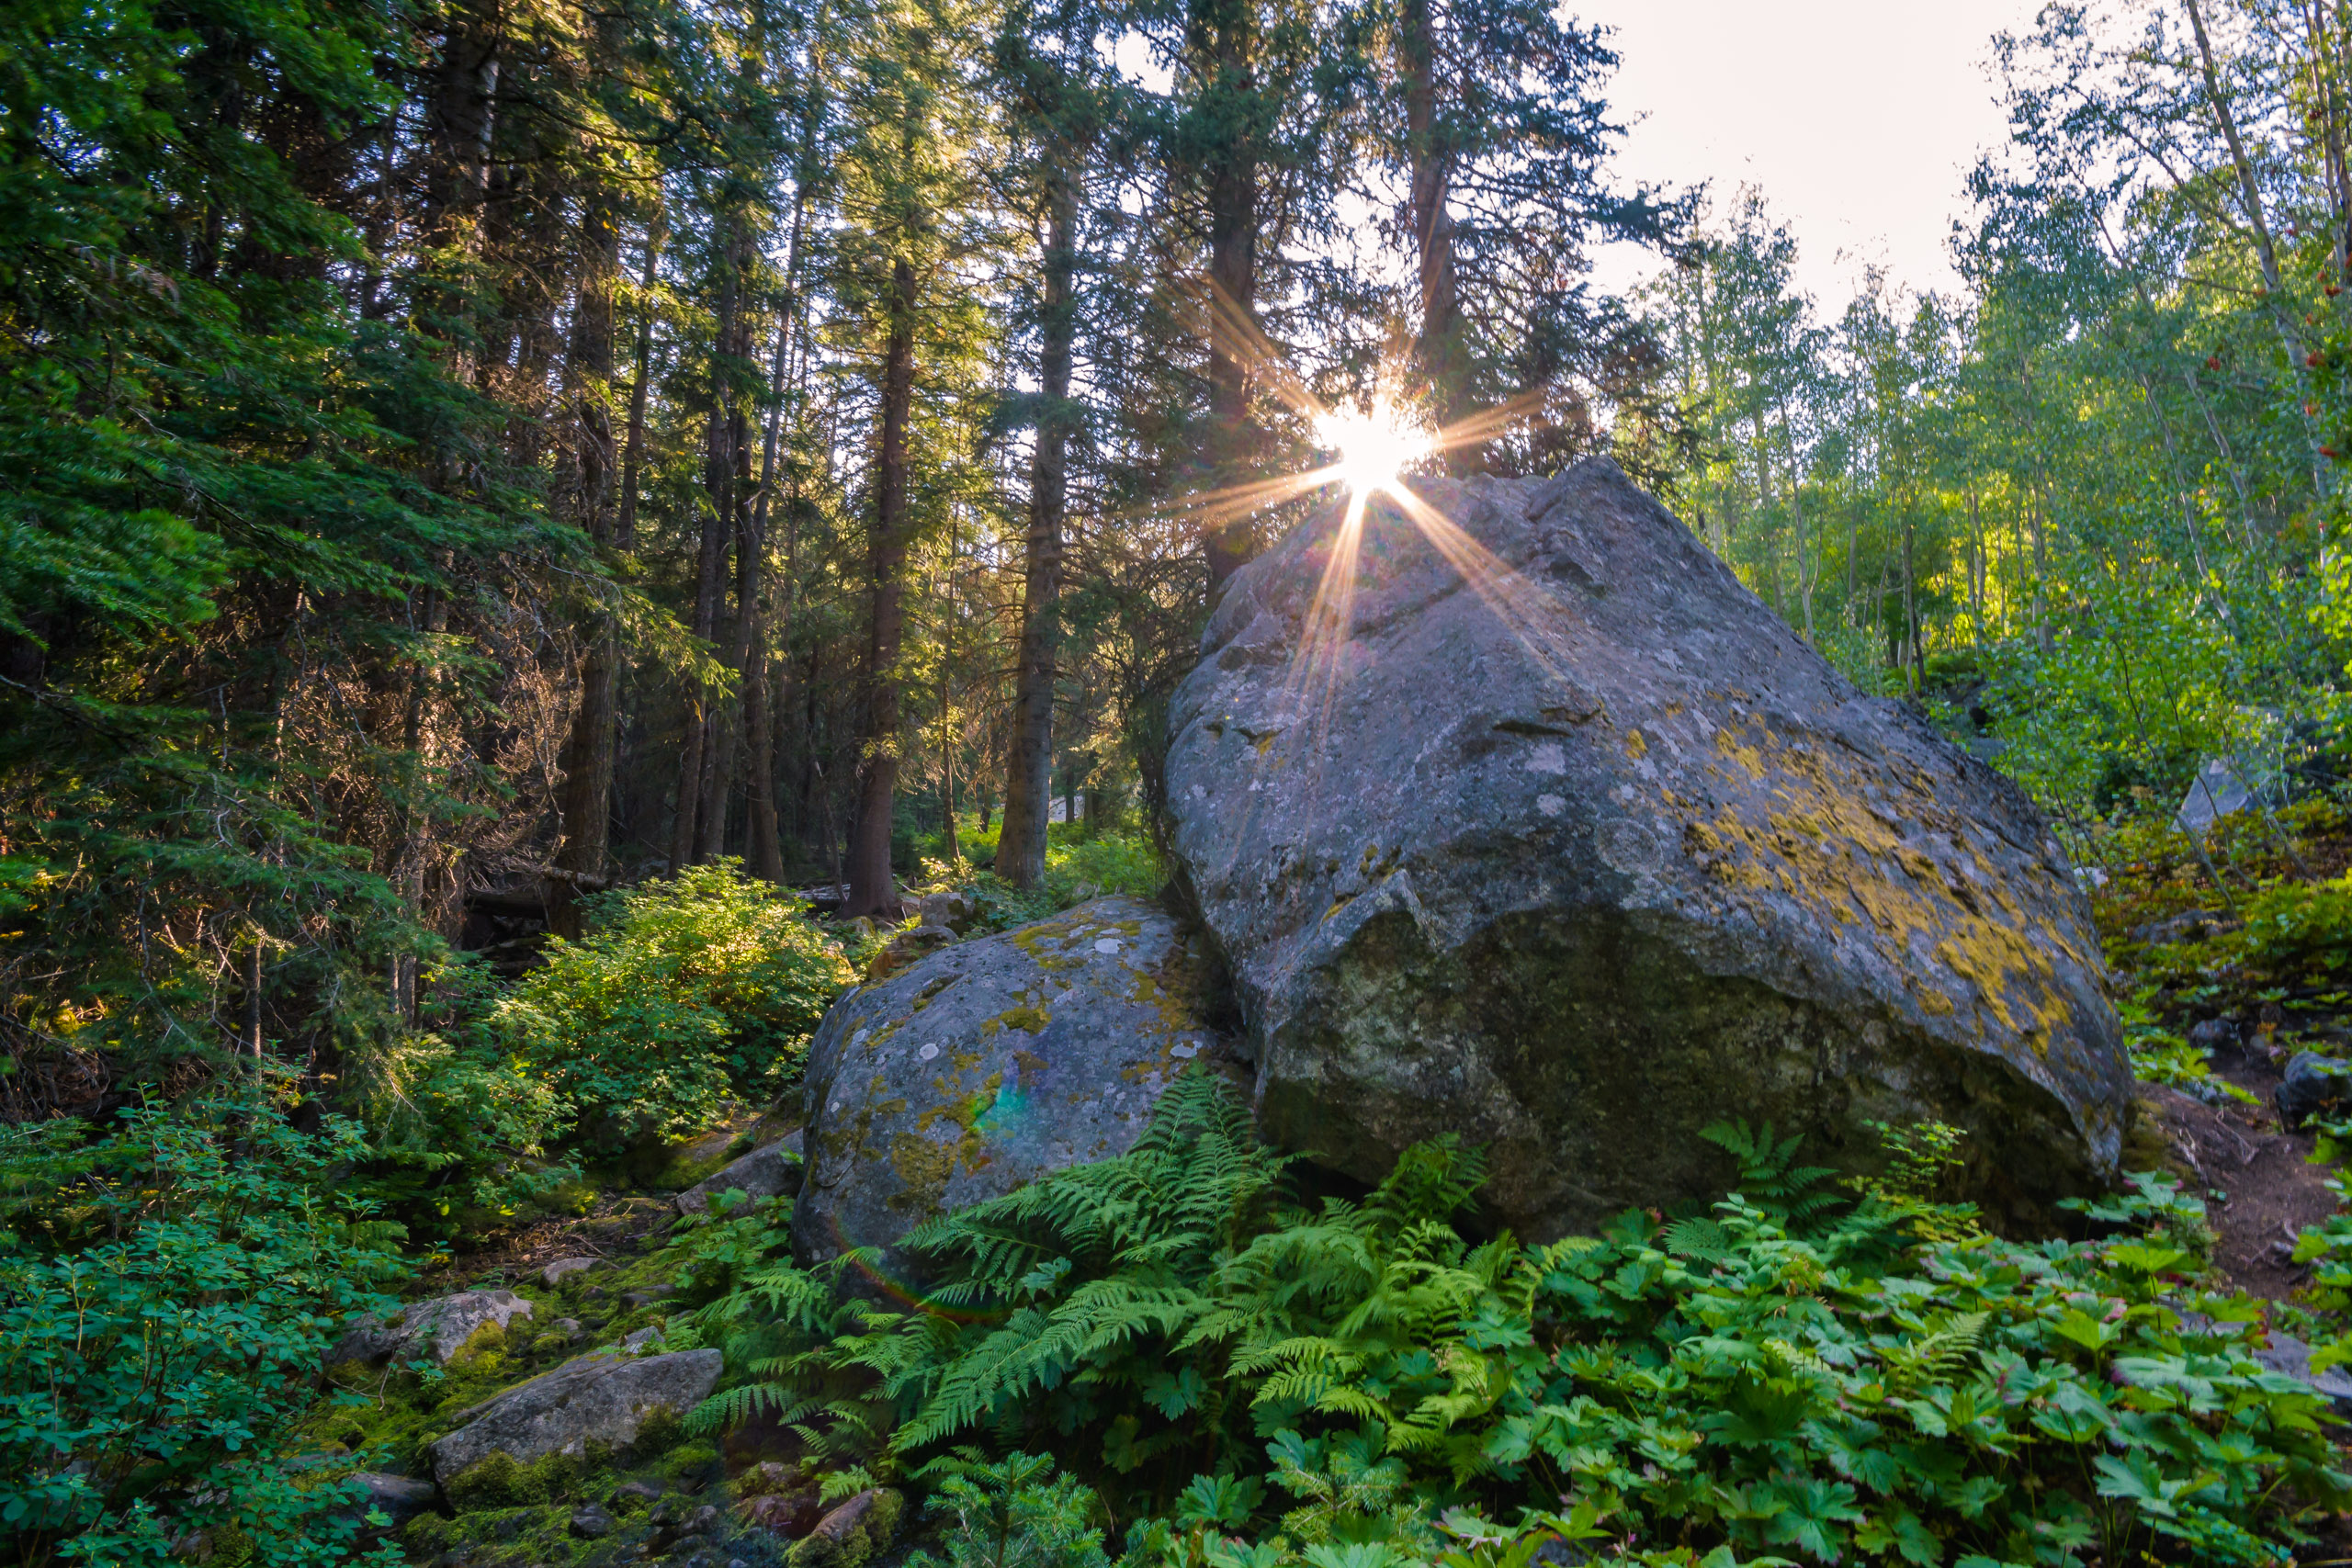 Sunset over a gigantic boulder